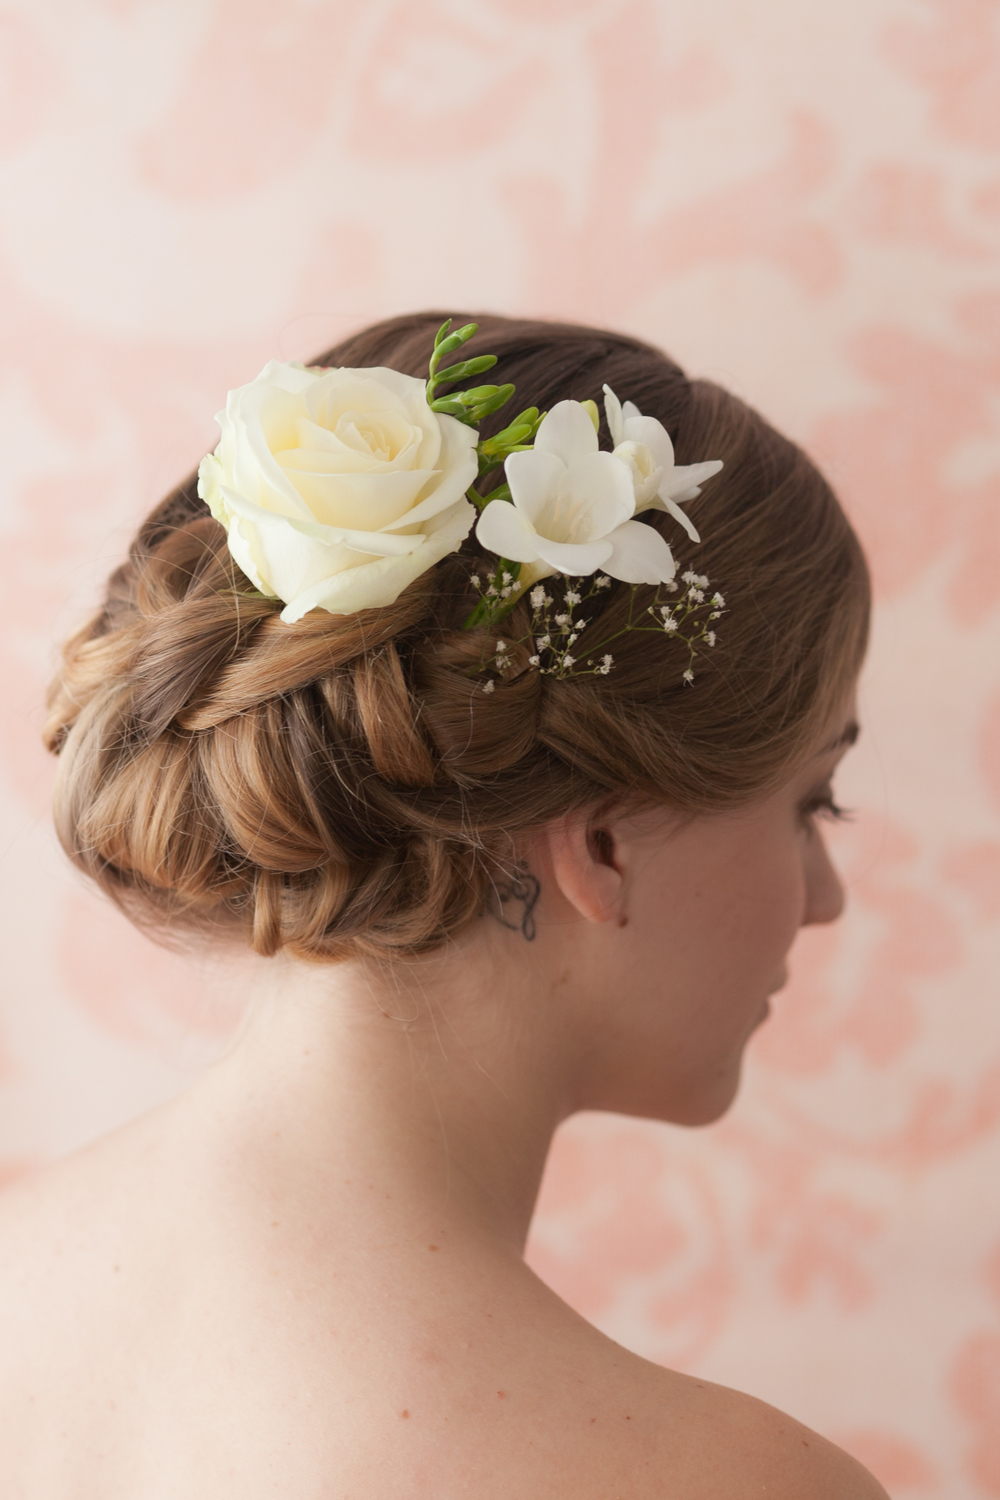 hair up with fresh flowers